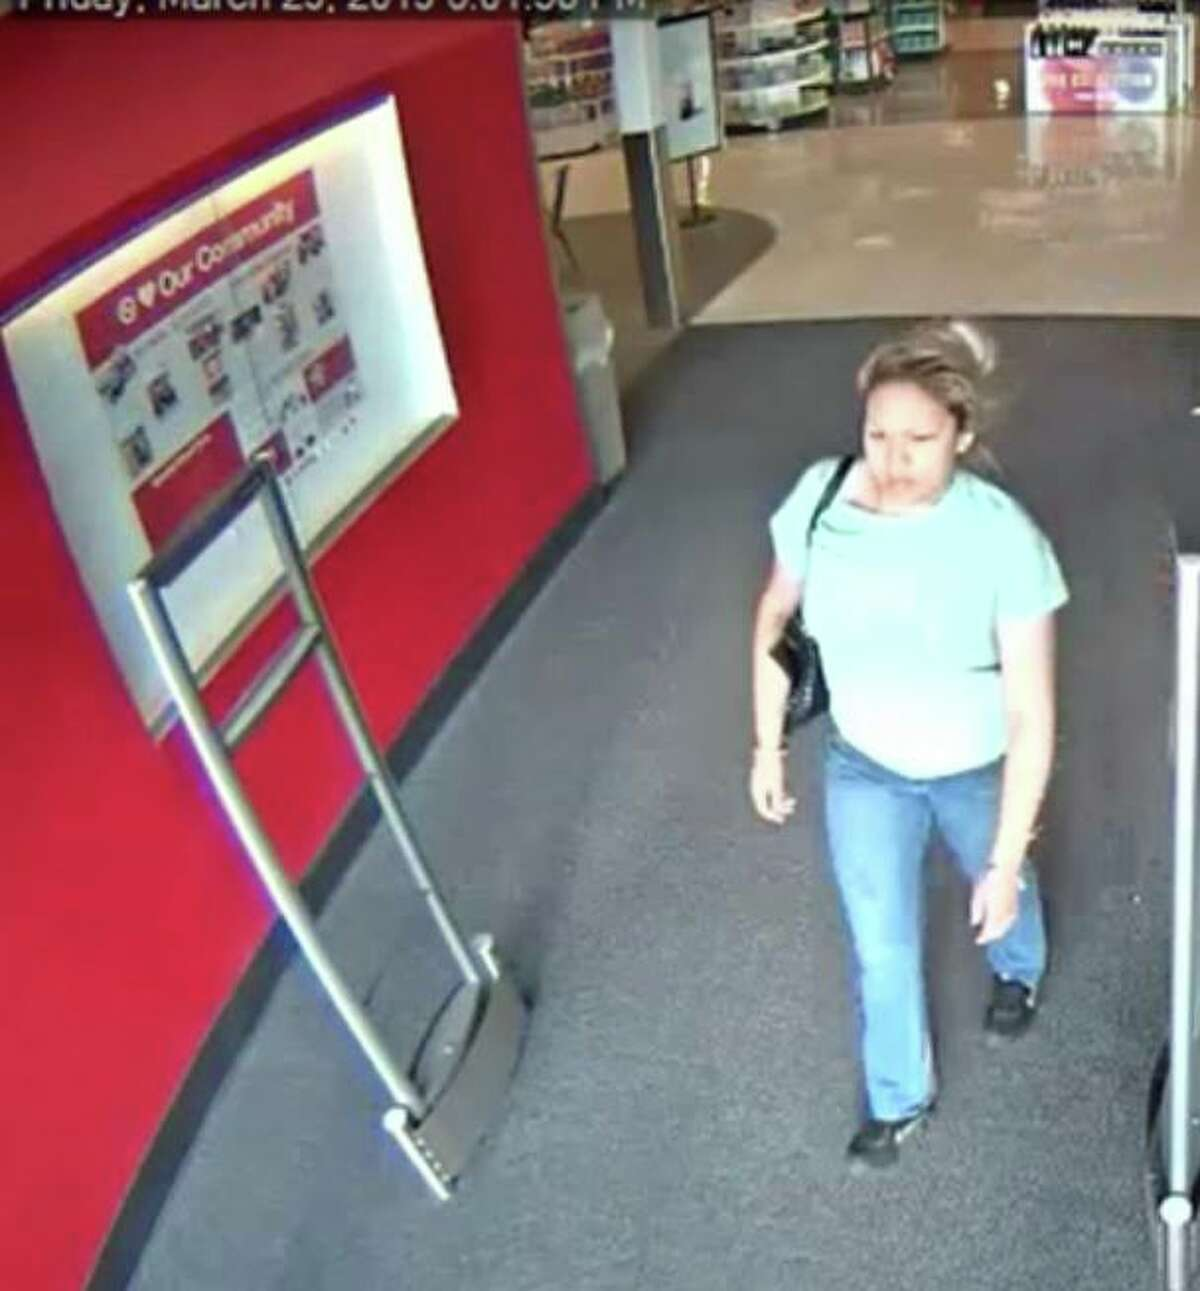 Authorities said this woman is wanted for questioning in a theft case.